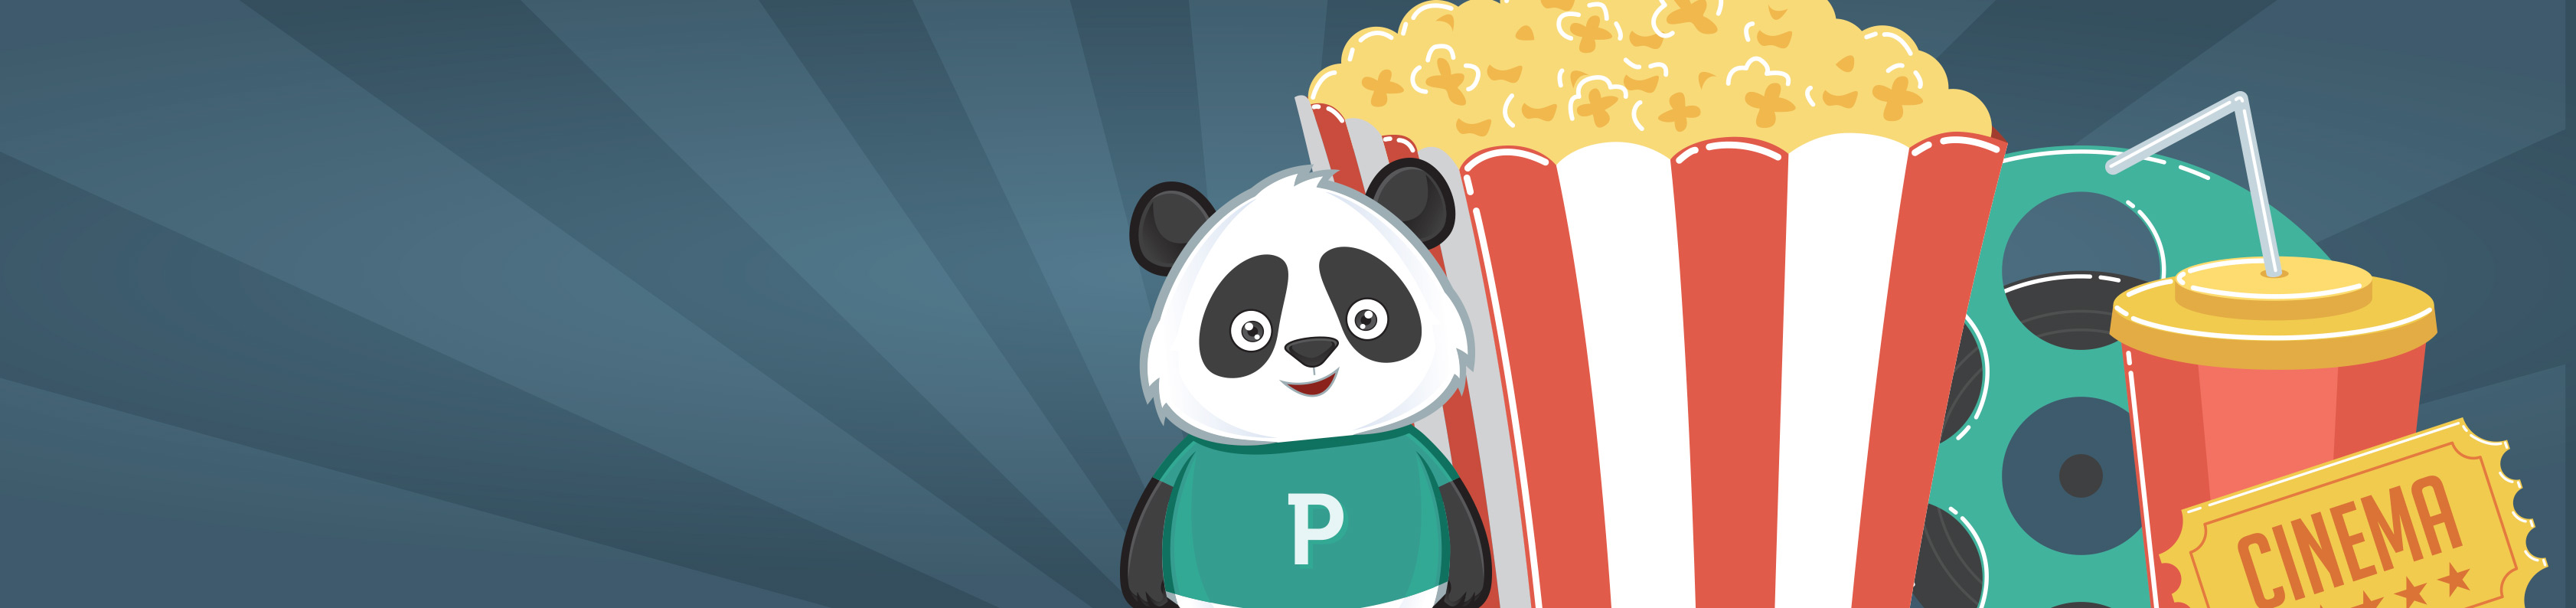 slide-penny-panda-movie-v1